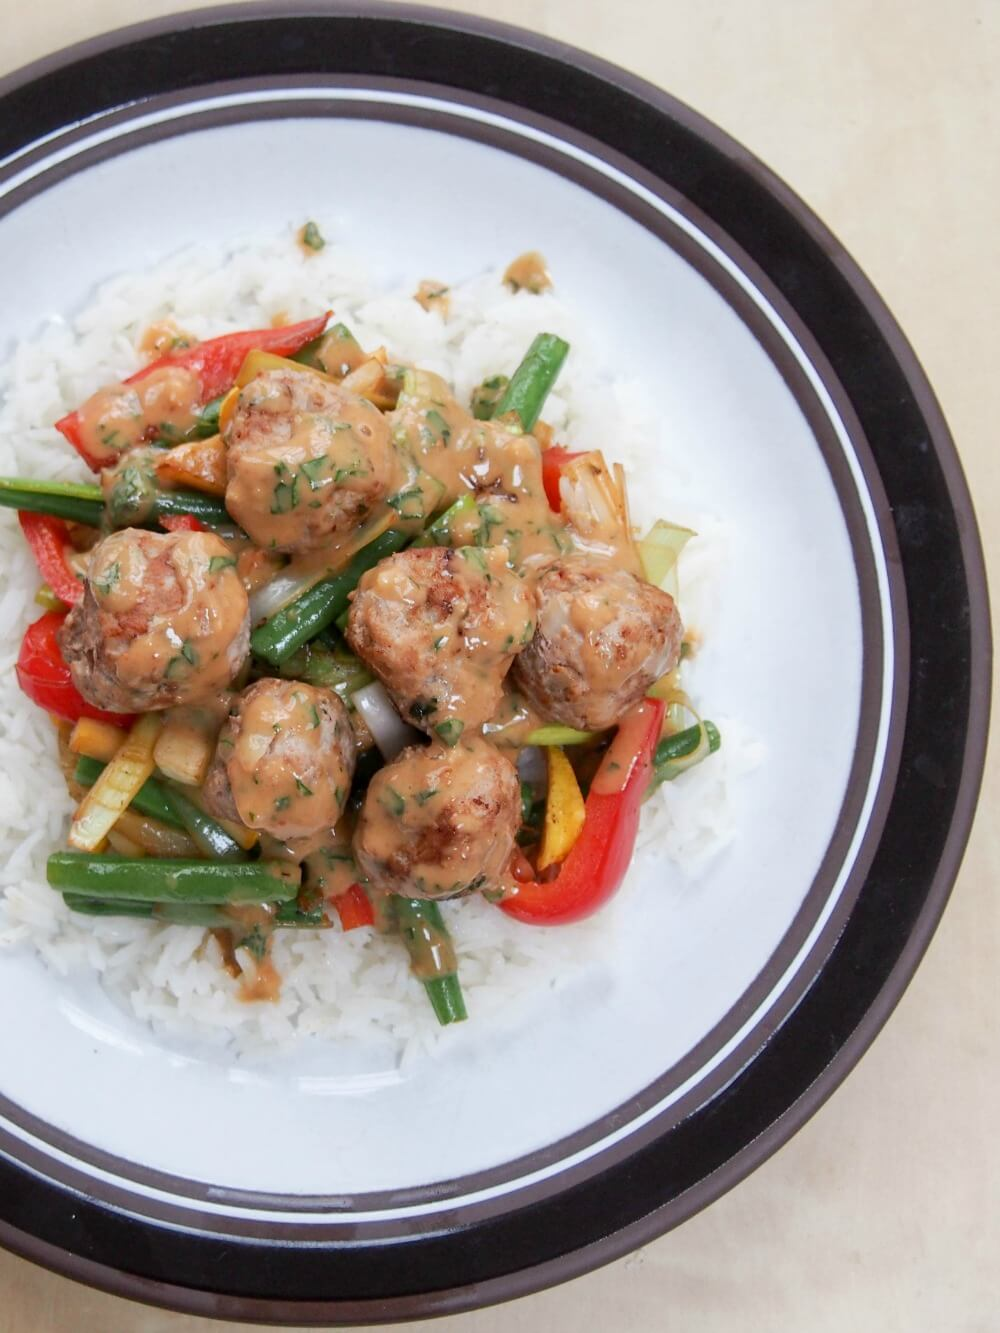 Thai basil pork meatballs with peanut-basil sauce as stir fry